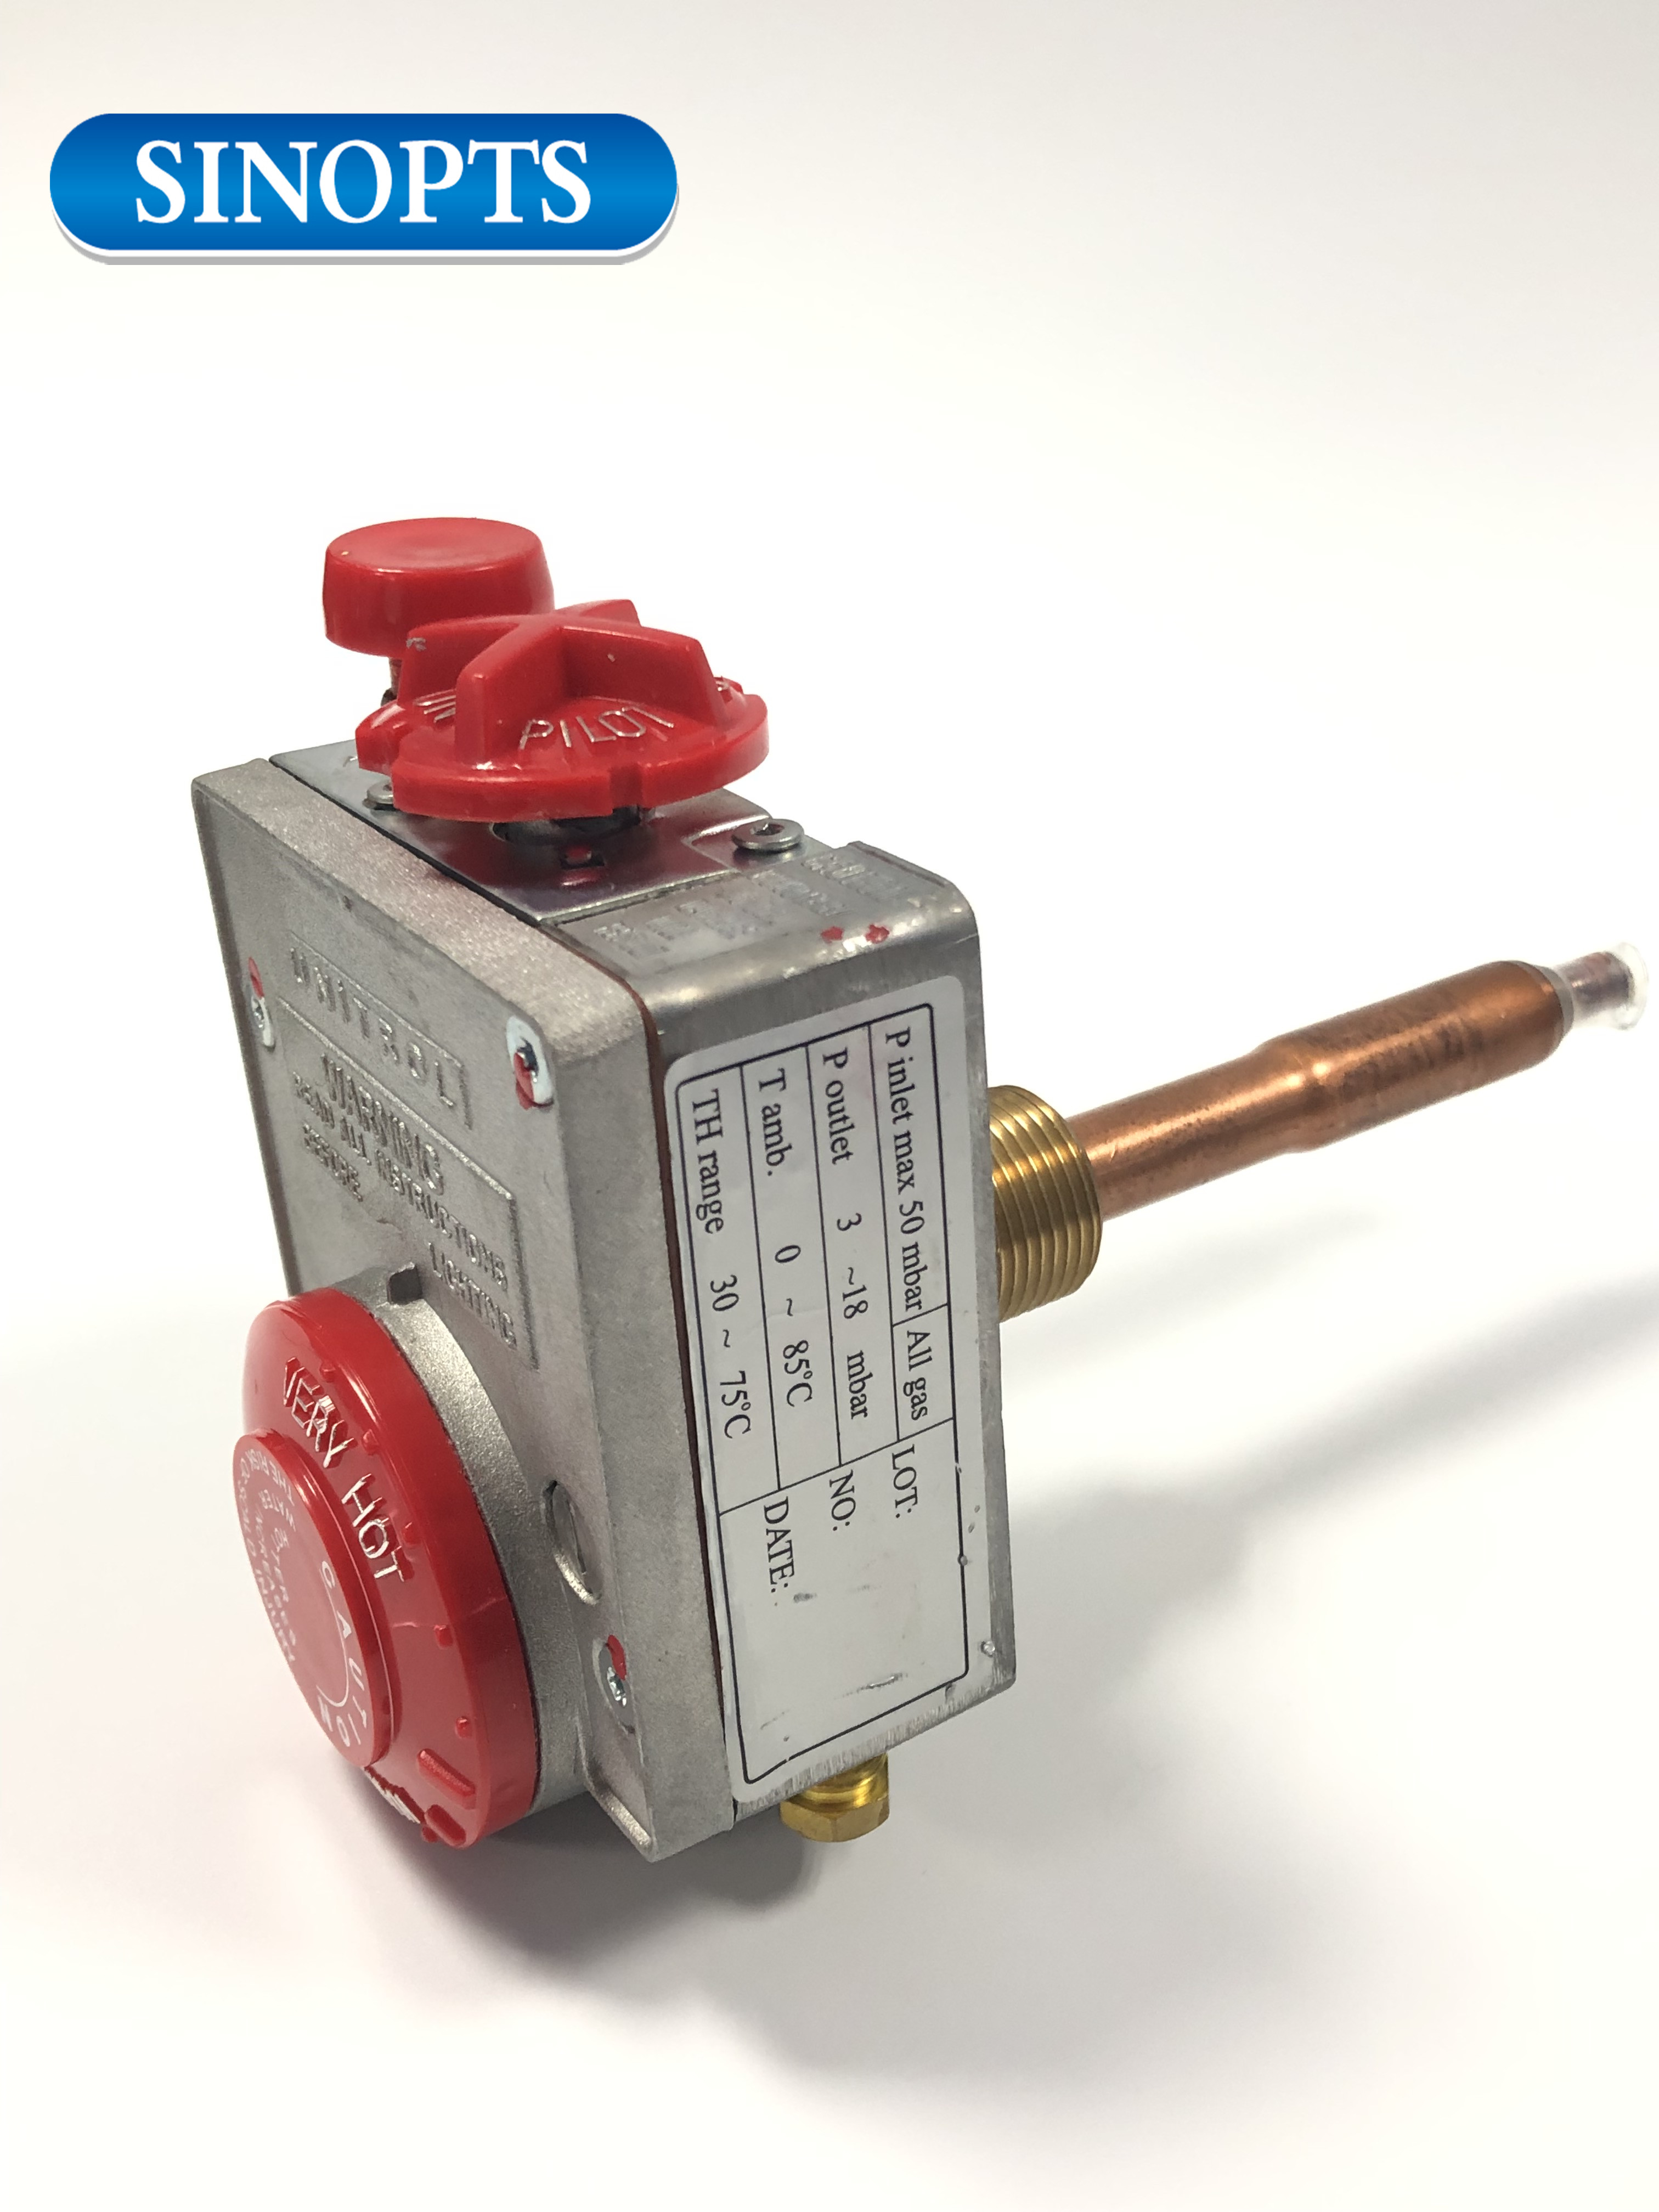 Sinopts Thermostat Water Heater Natural Gas Control Valve